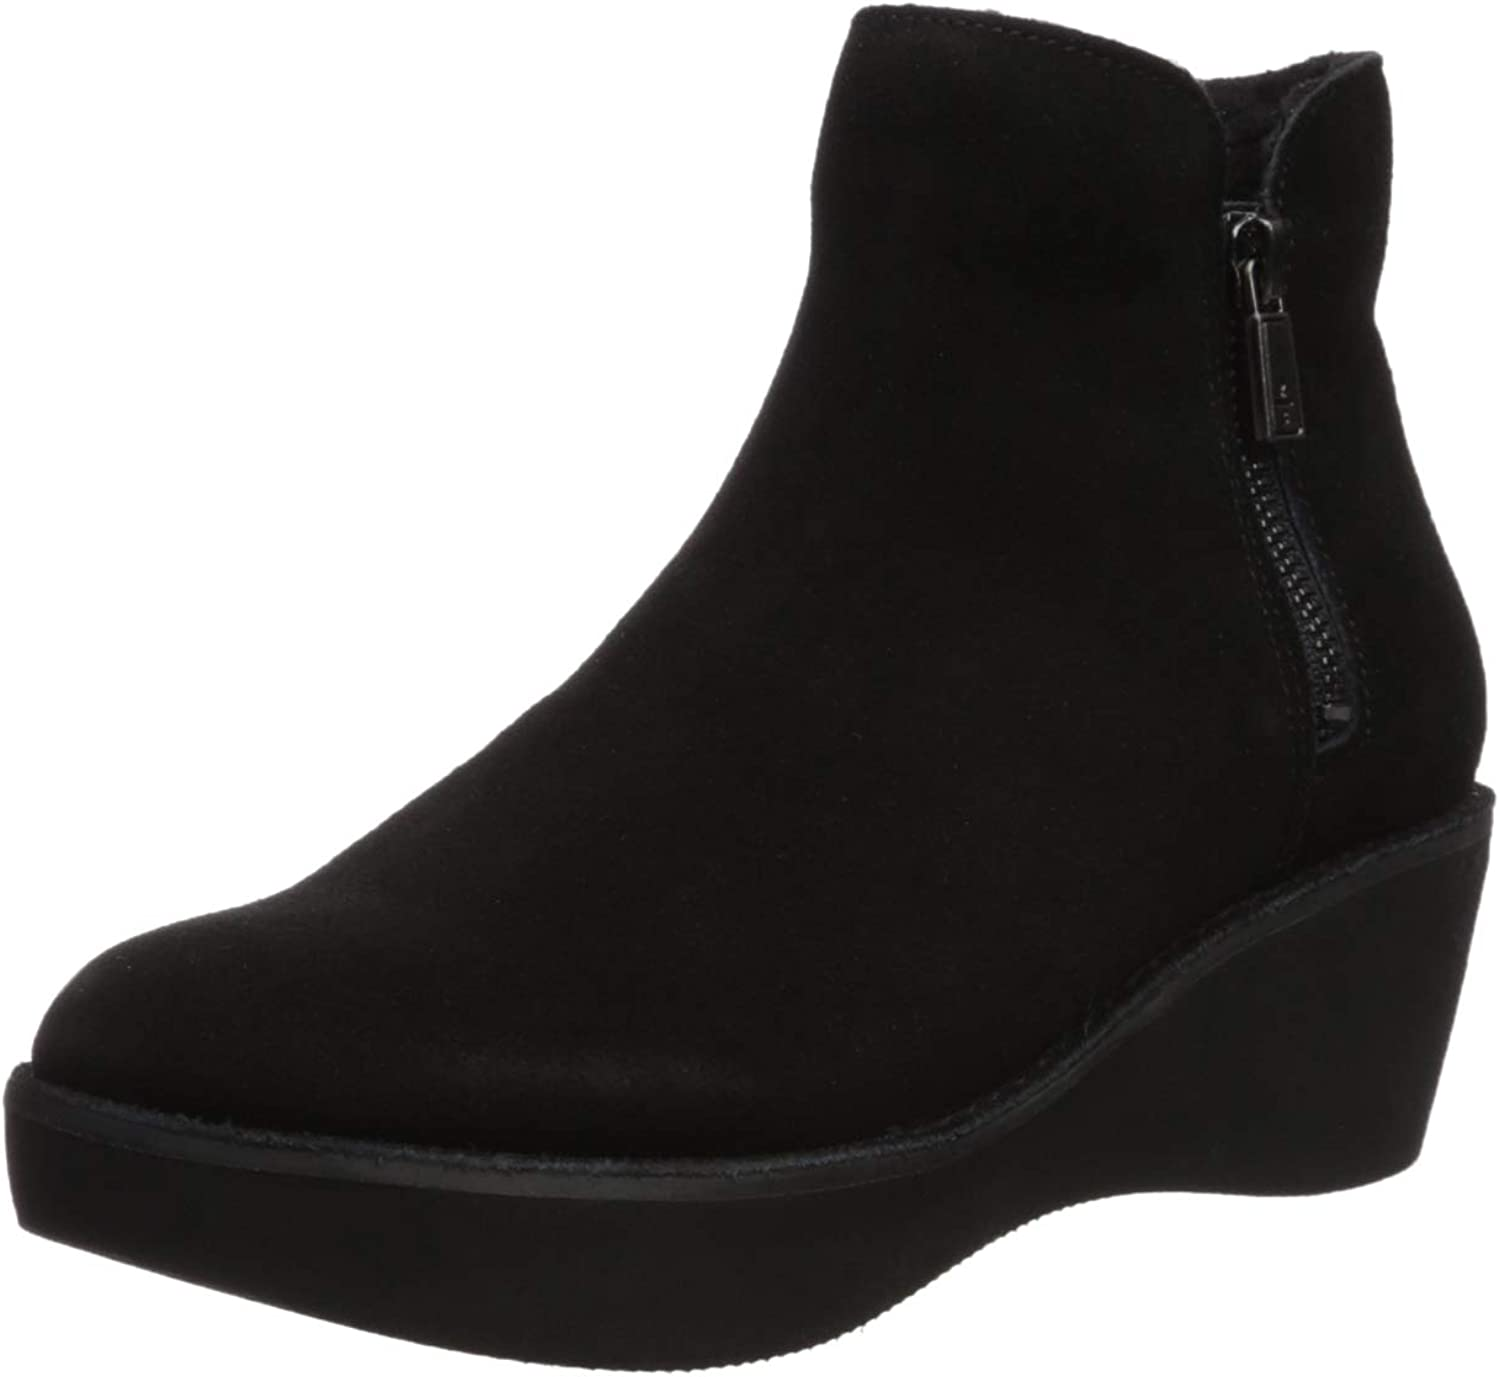 Kenneth Cole REACTION Womens Prime Cozy Platform Bootie with Side Zip Ankle Boot